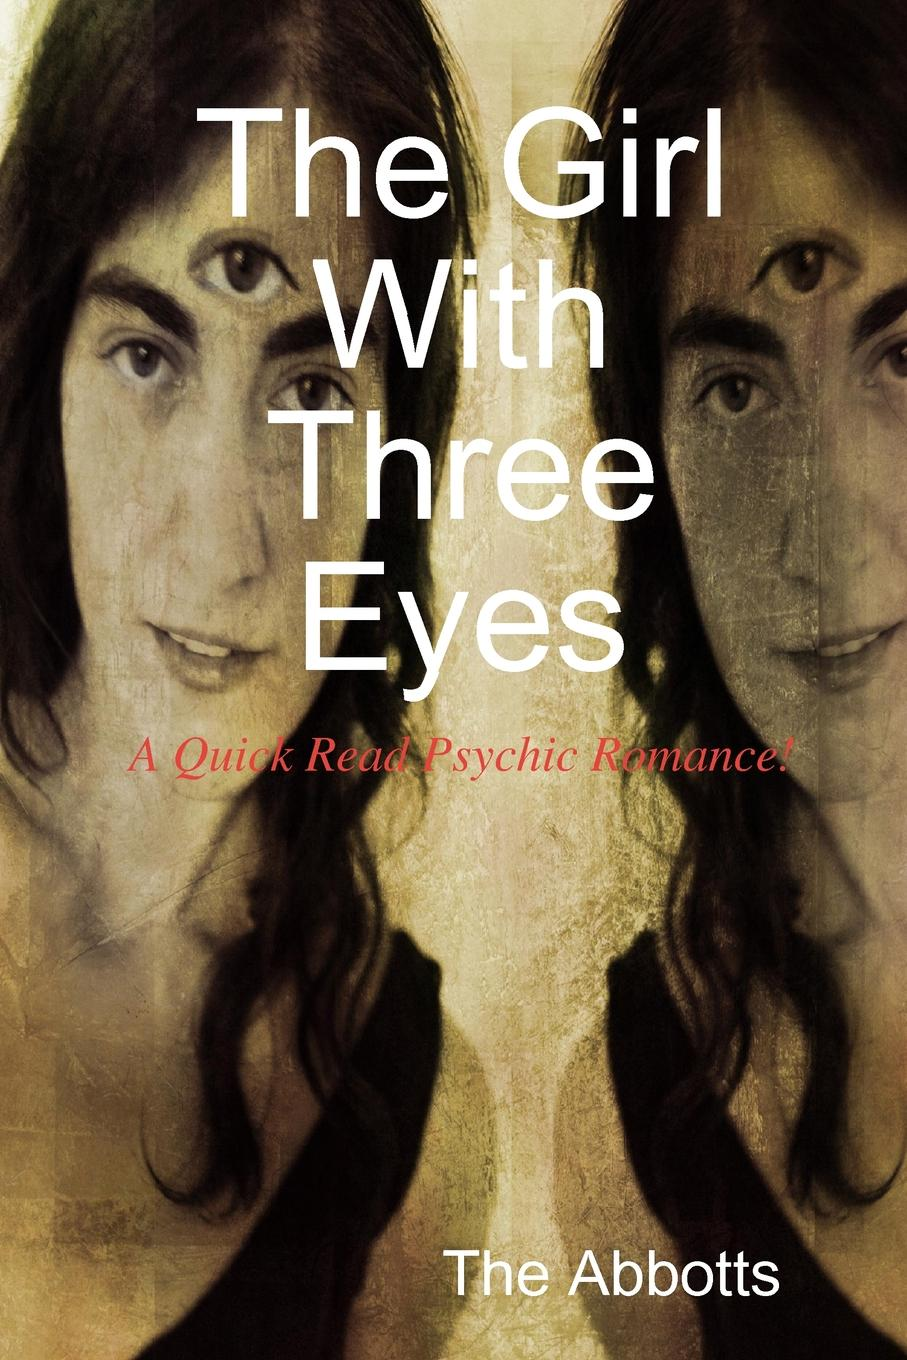 The Abbotts The Girl With Three Eyes - A Quick Read Psychic Romance